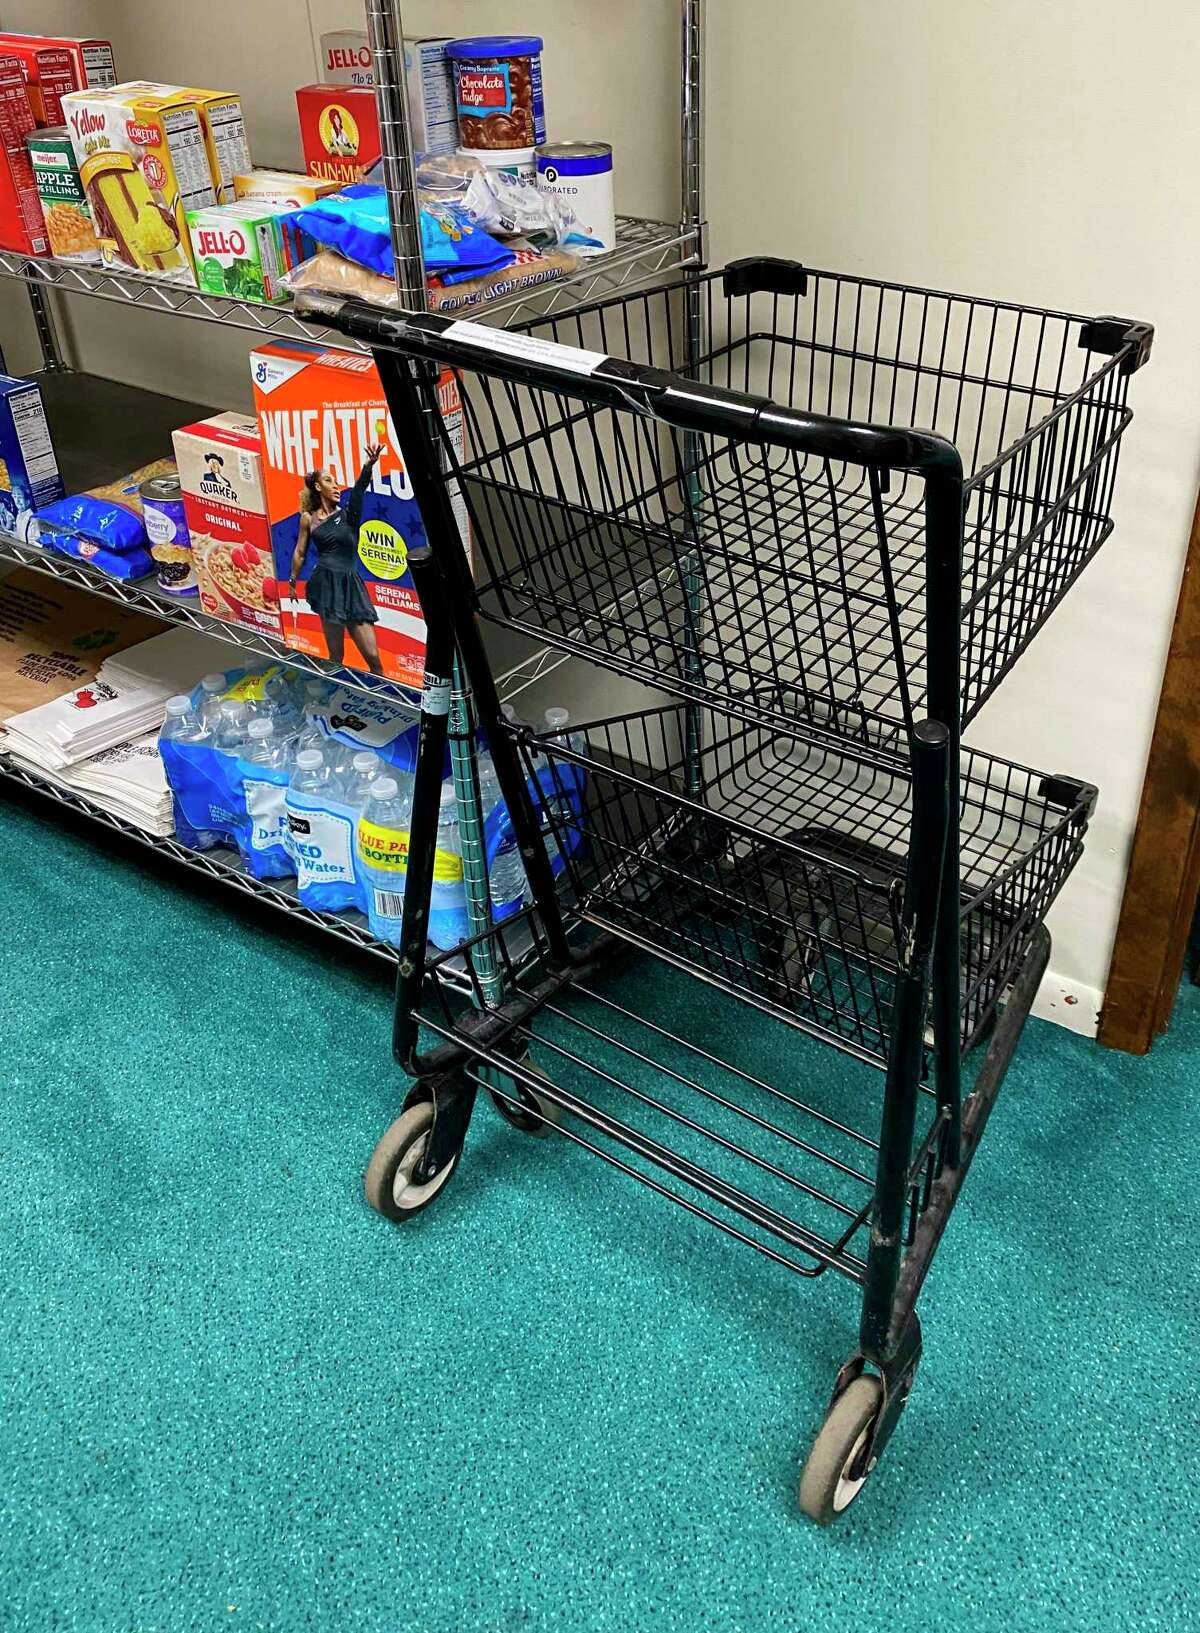 TheCaseville Community Food Pantry, located in the basement of Caseville United Methodist Church, features a shopping cart for those who need immediate help. The food pantry will continue to hold drive-thru food distributions after the pandemic is over, due to their efficiency and cost-effectiveness. (Mark Birdsall/Huron Daily Tribune)